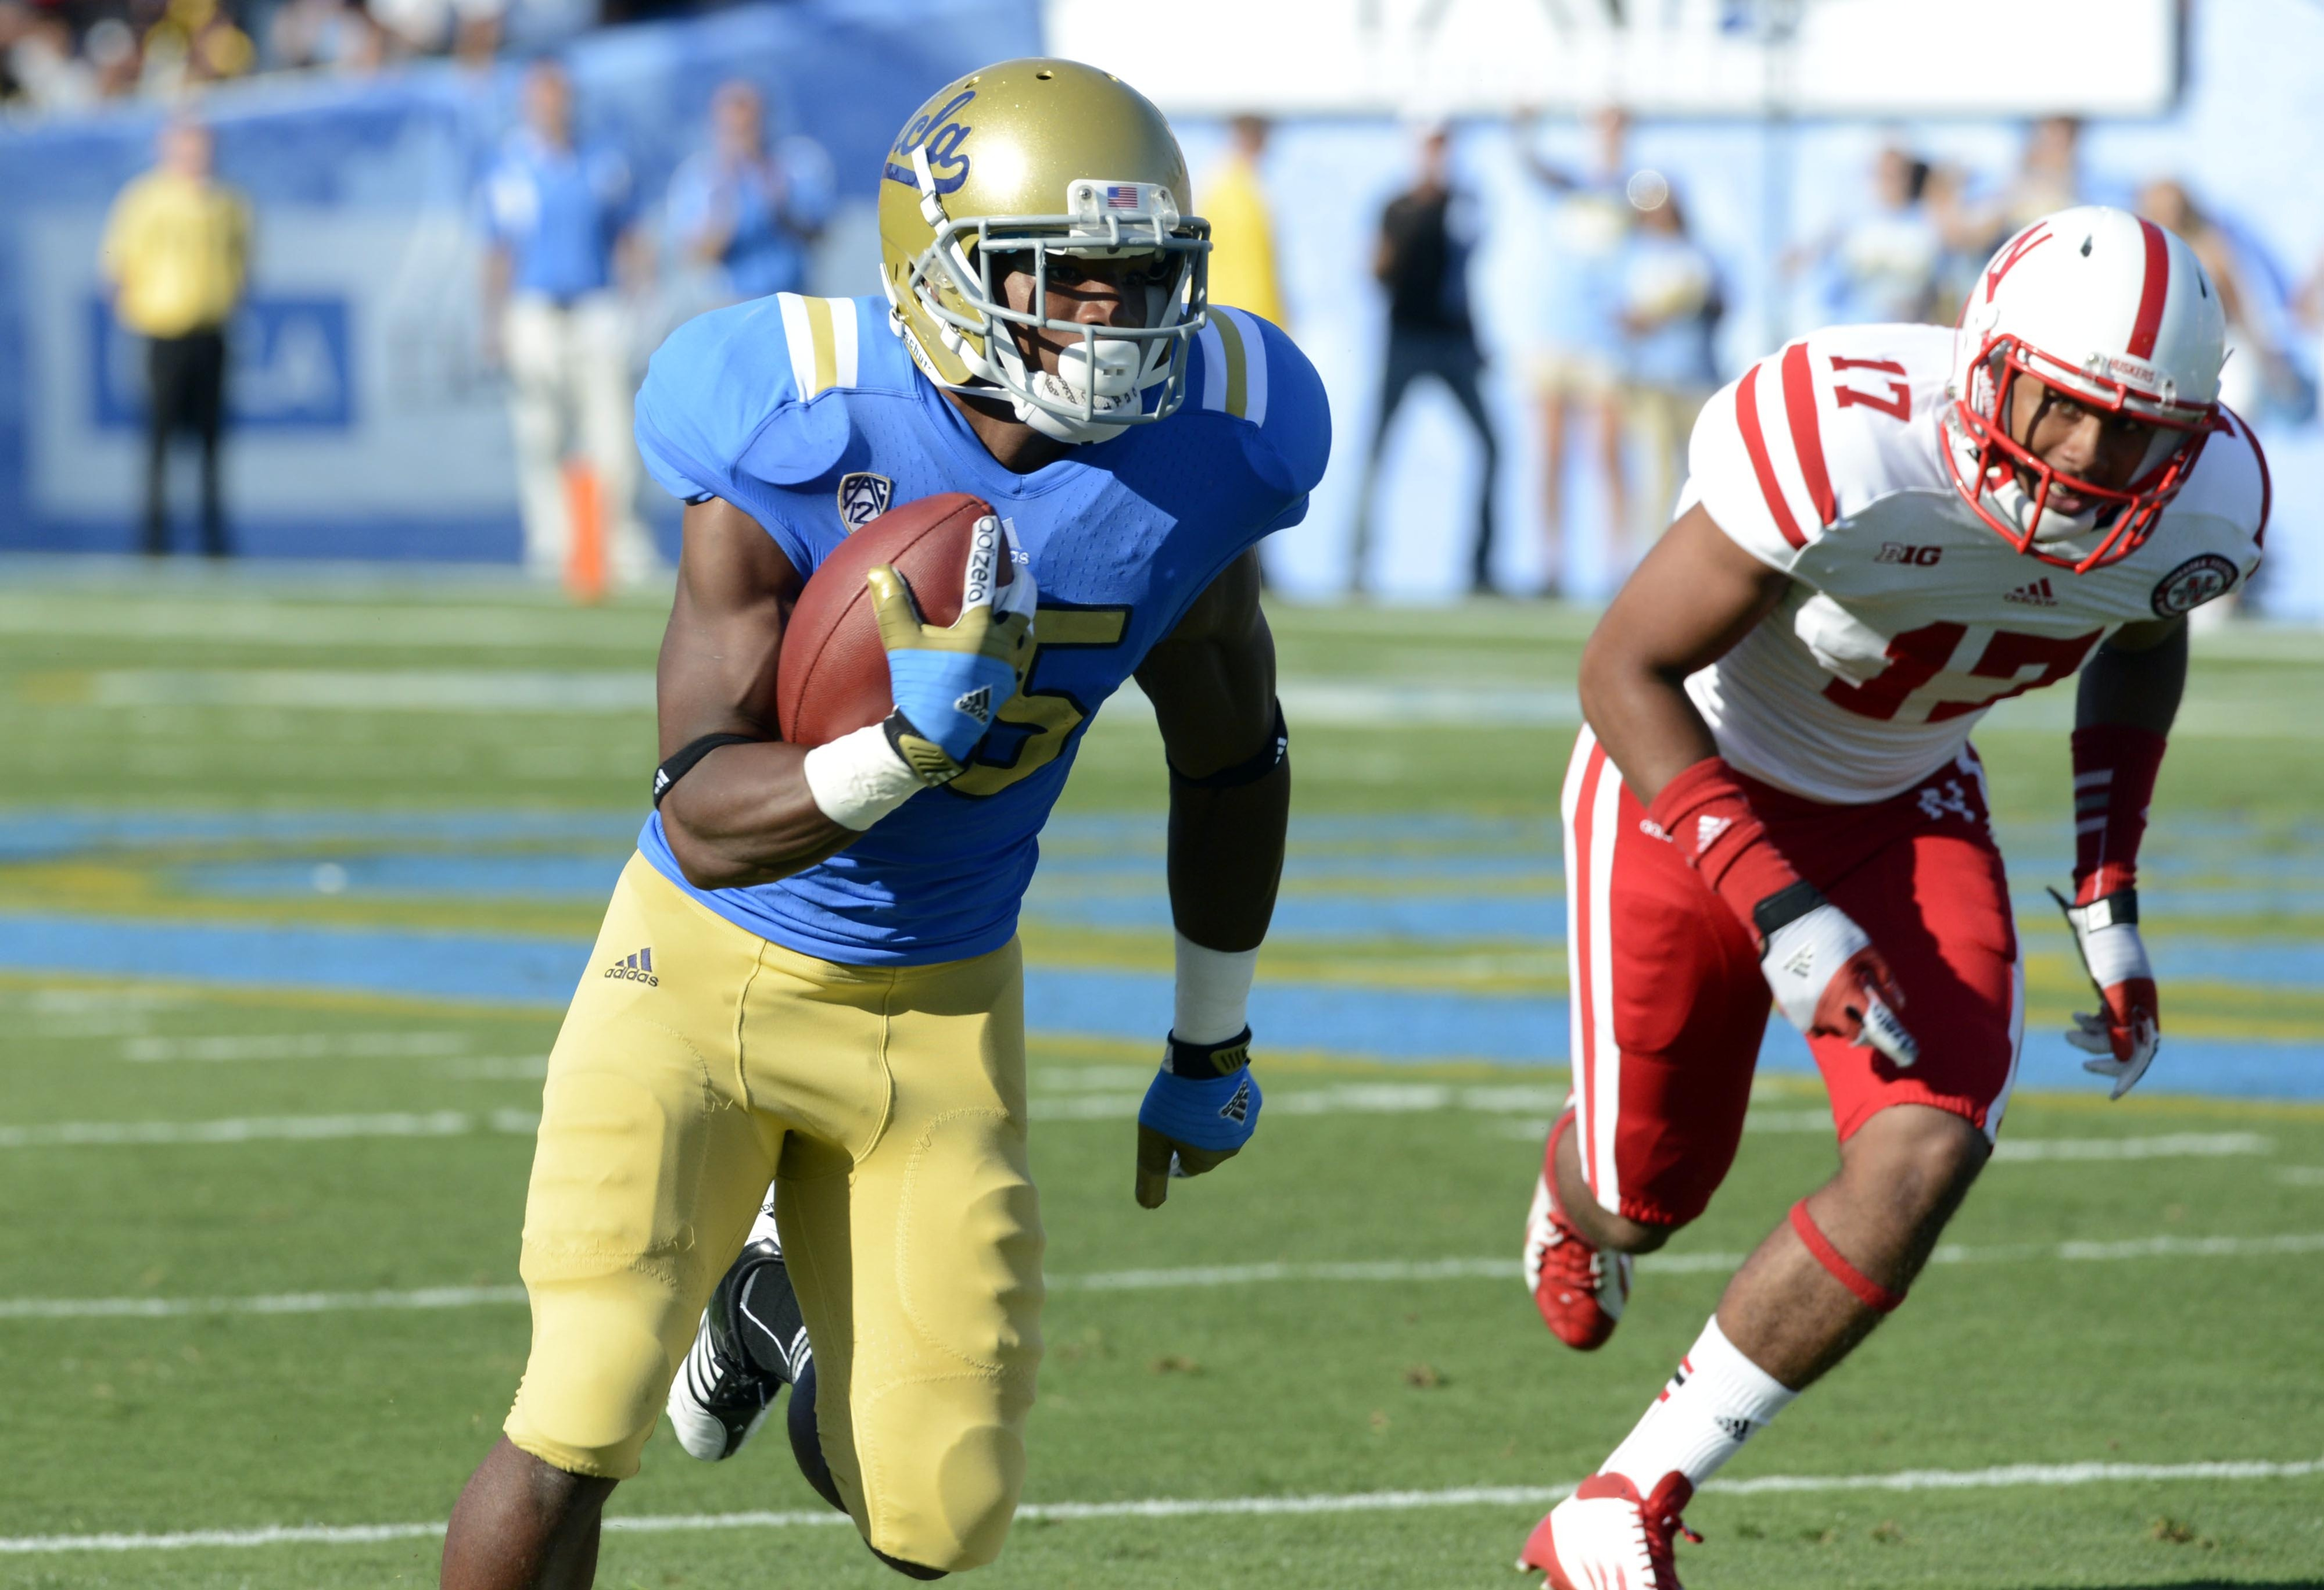 Devin Lucien is stepping into a leadership role with the Bruin receivers.